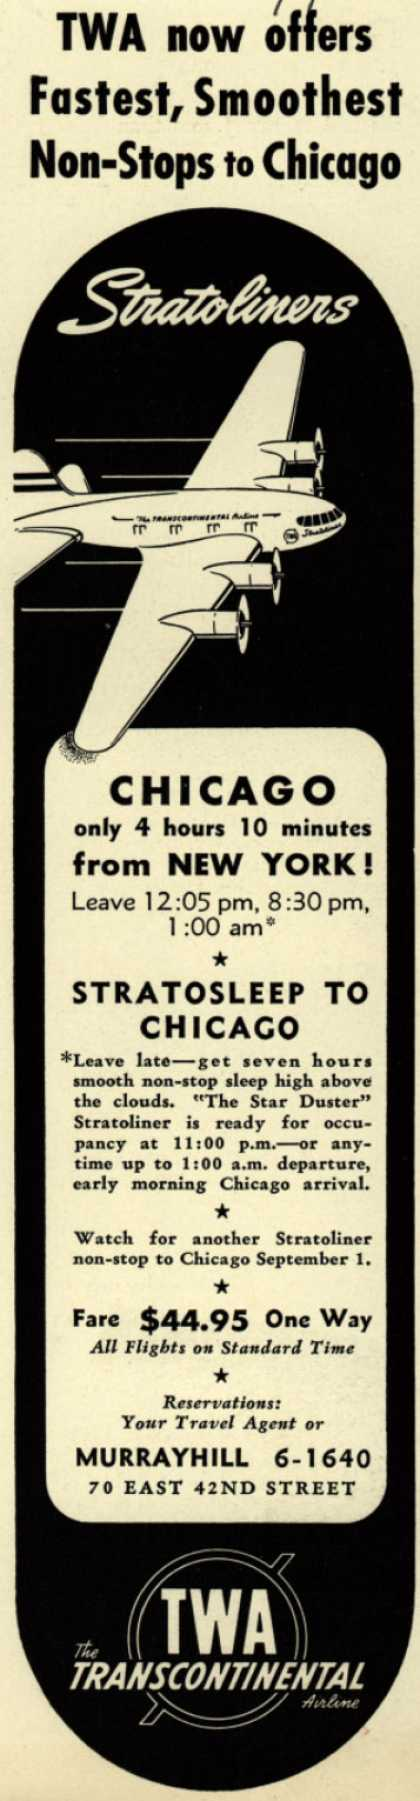 Transcontinental & Western Air's New York-Chicago – TWA now offers Fastest, Smoothest Non-Stops to Chicago (1940)